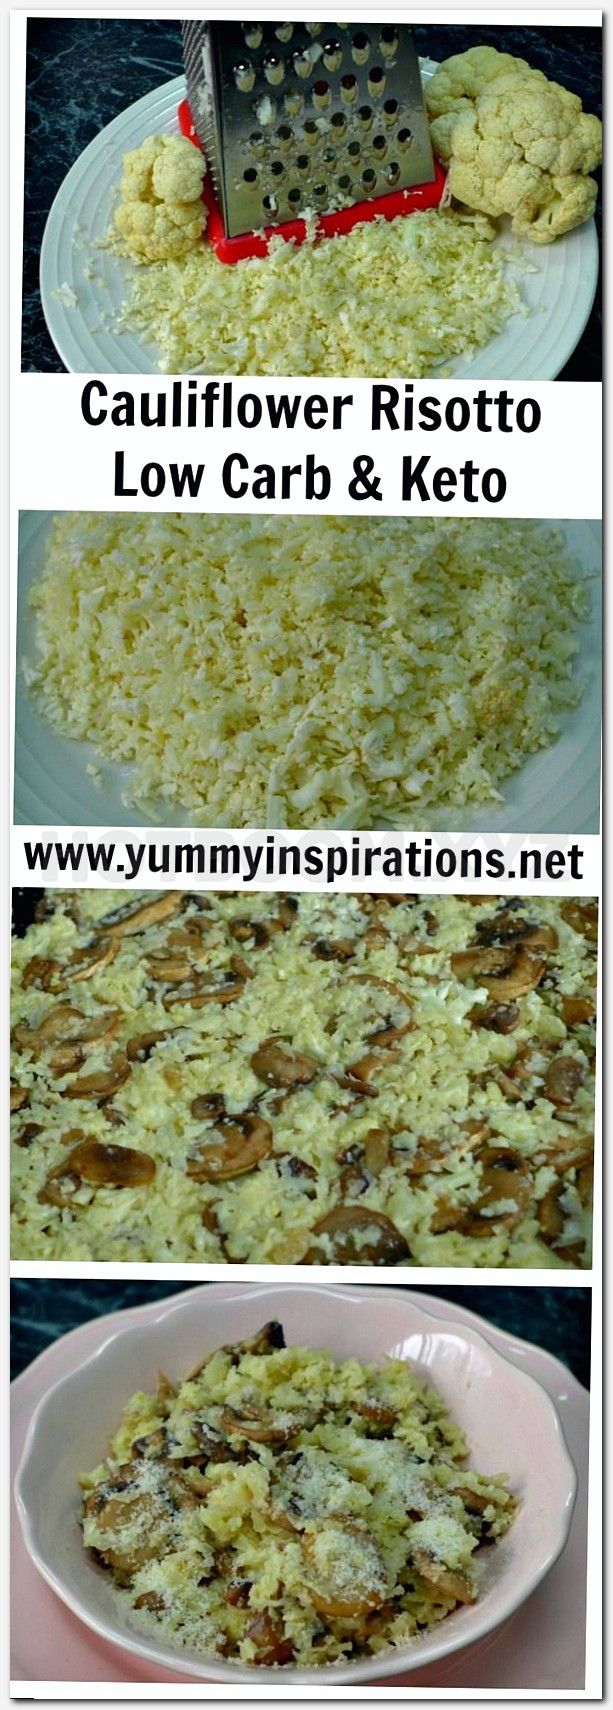 World Health Foods, Snacks Healthy Recipes, The Negative